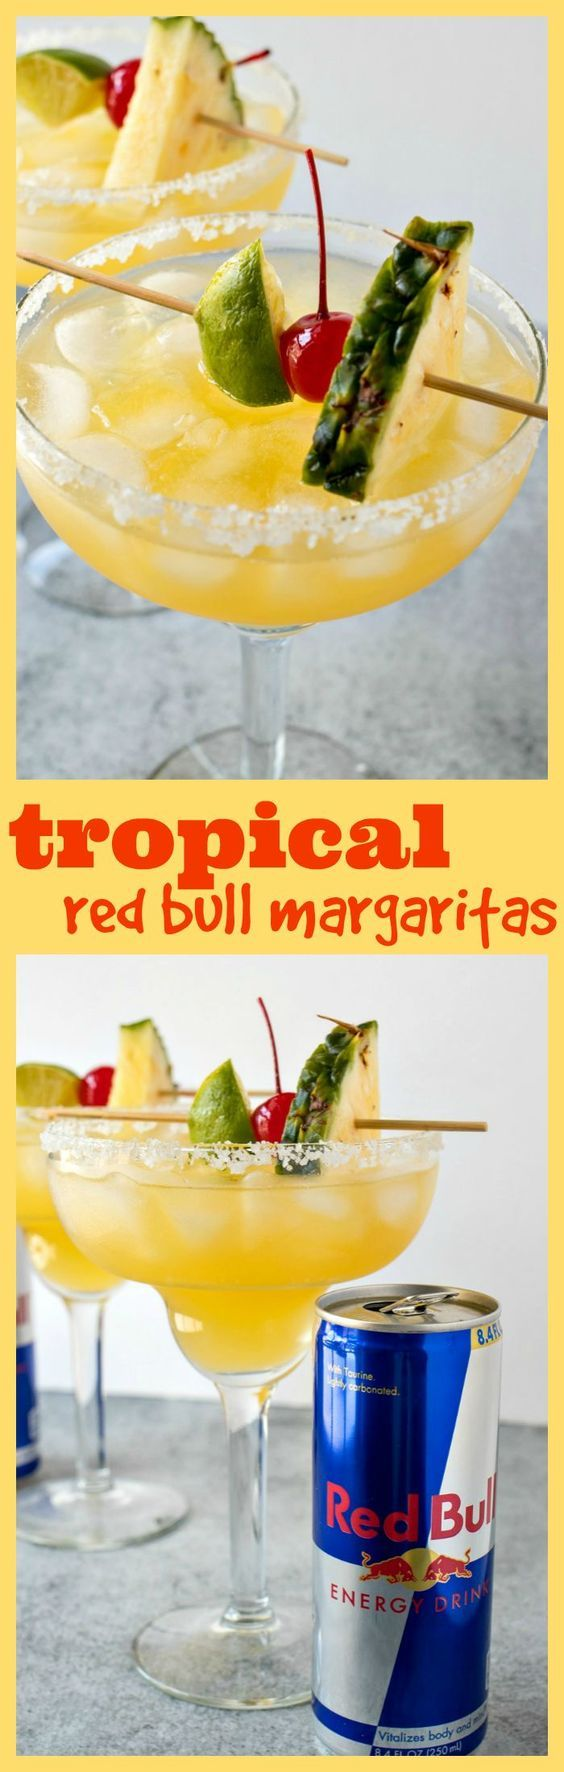 Tropical Red Bull Margaritas – A blend of pineapple, mango, and guava juices is combined with your typical margarita ingredients plus a boost from Red Bull Energy Drink to make these incredible Tropical Red Bull Margaritas. #ad #redbull #margarita #hispan